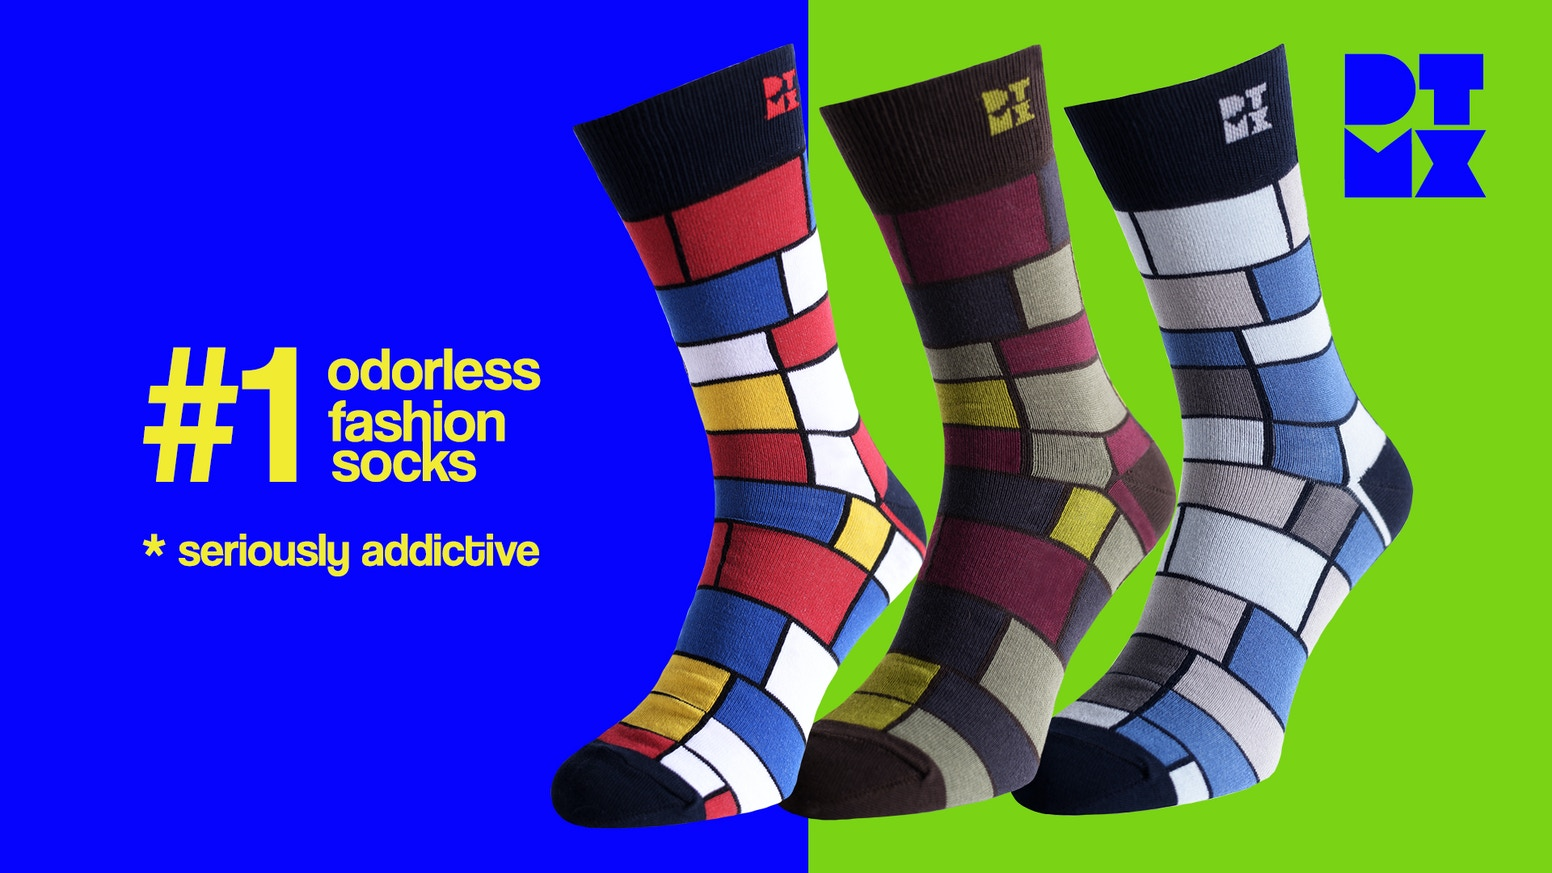 DTMX is a brand of funky silver socks for healthy feet, that incorporates fashion, sustainability & innovation.